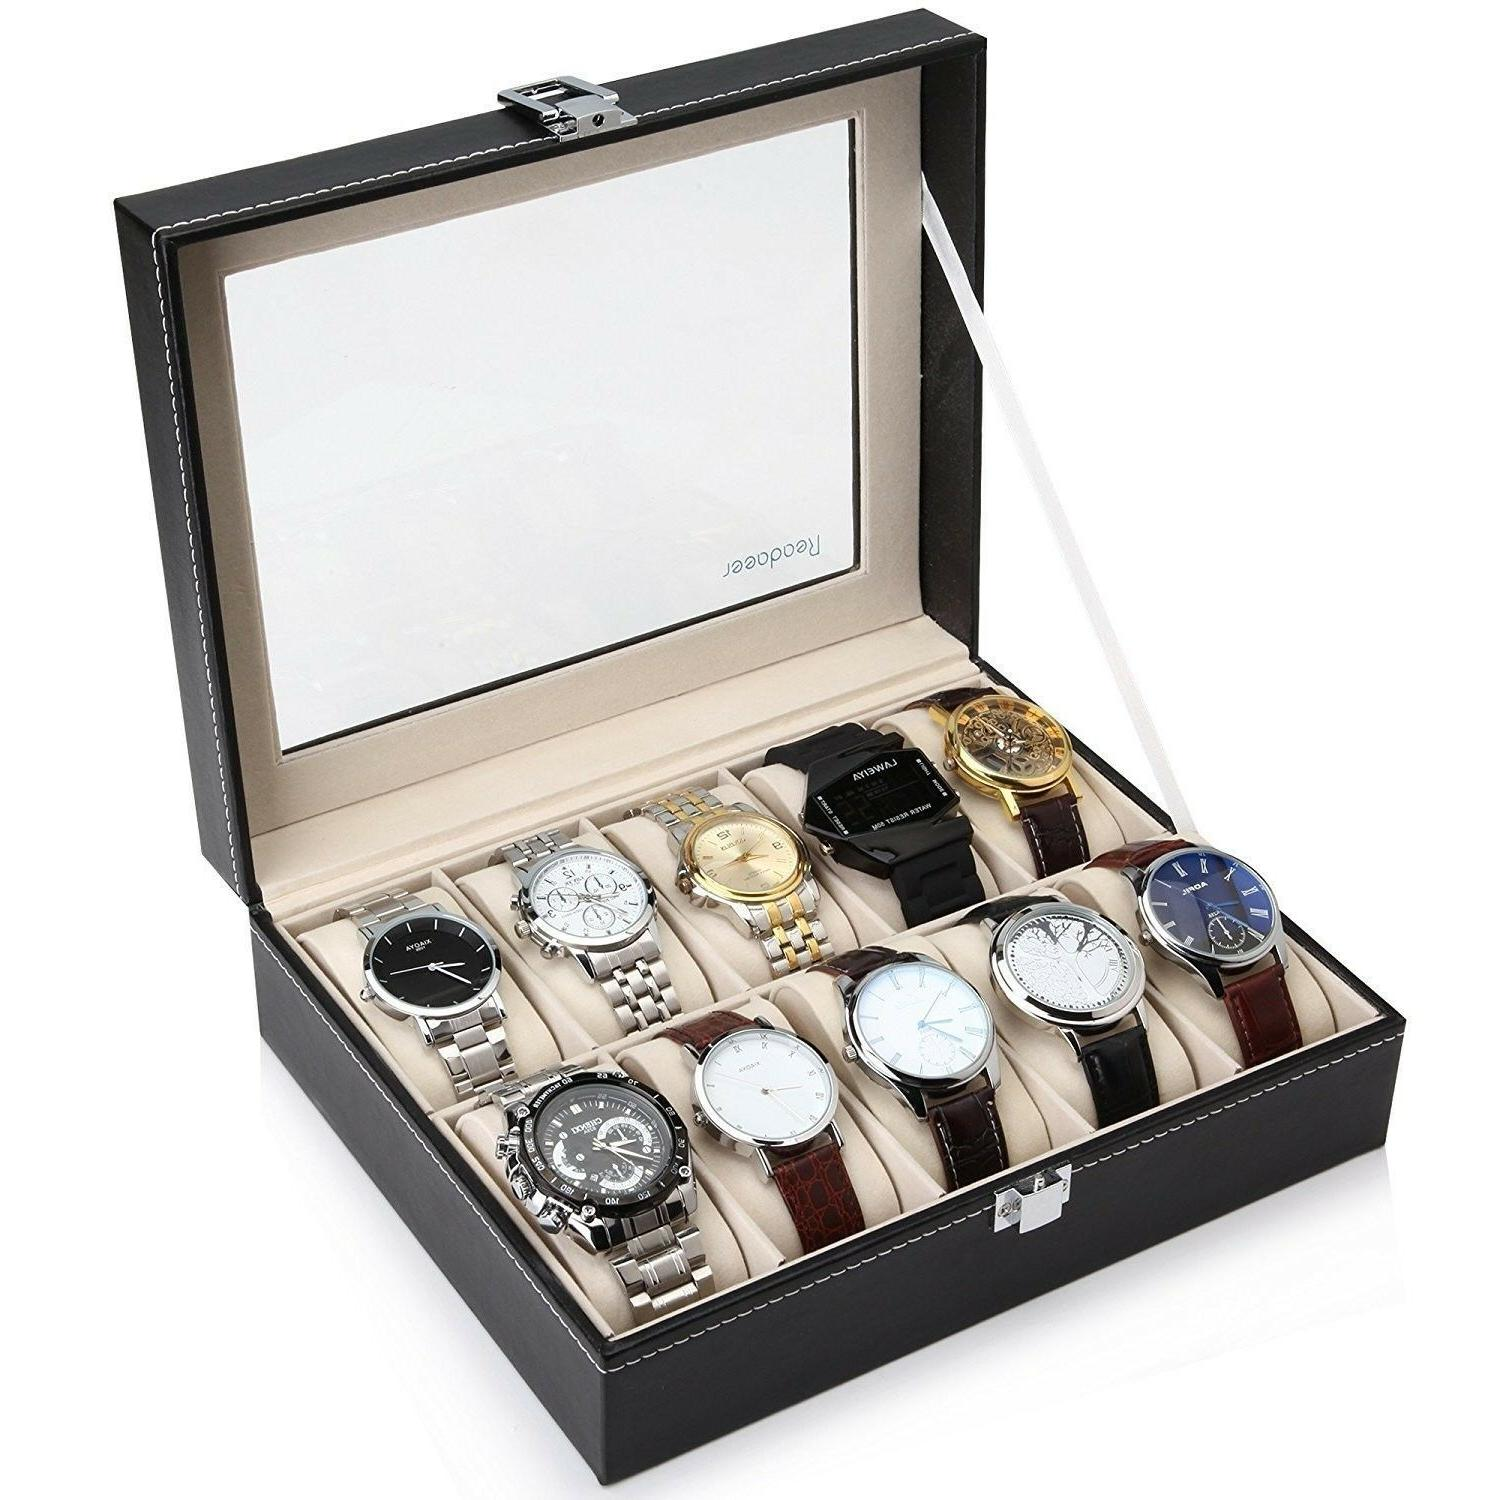 Readaeer Glass Top 10 Watch Black Leather Box Case Display F